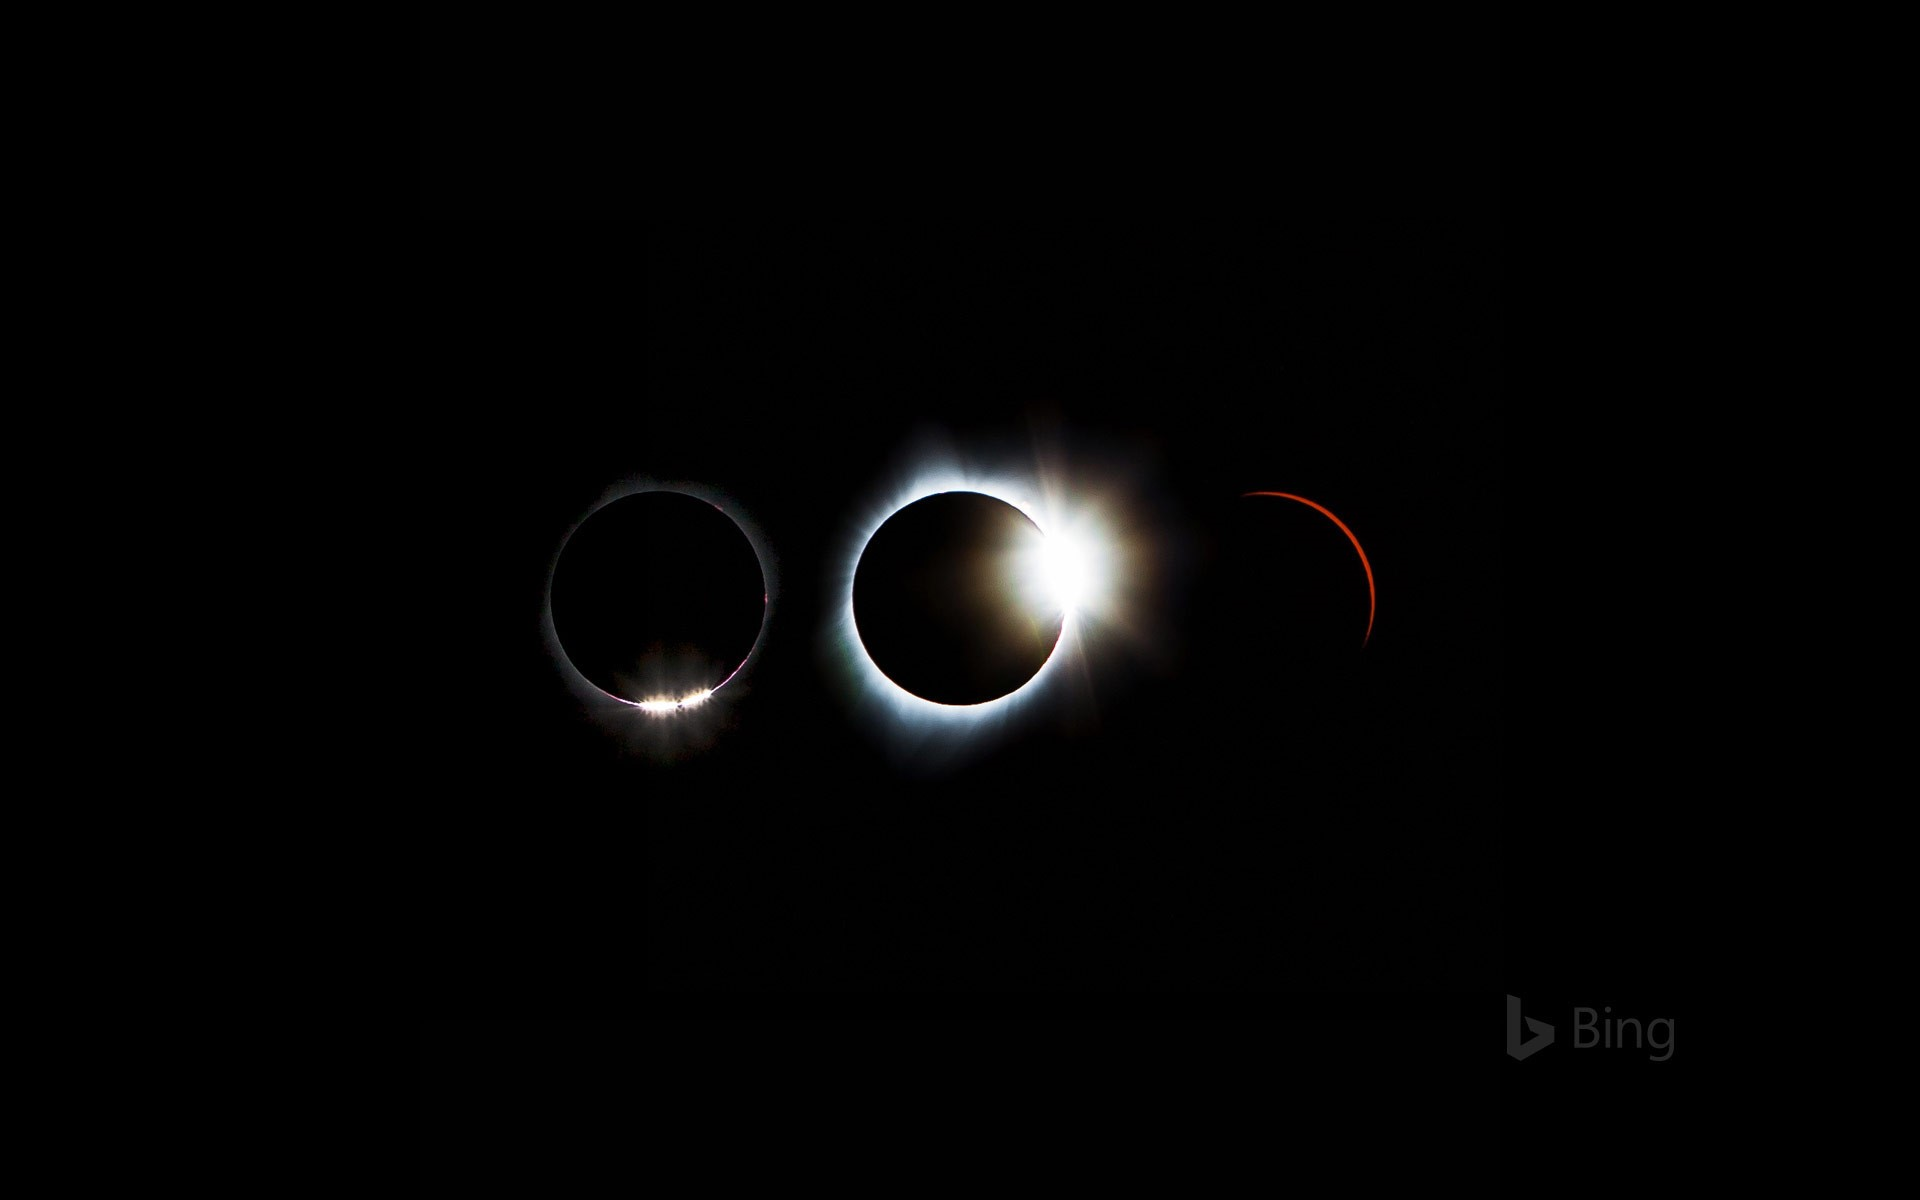 Solar eclipse sequence from August 21, 2017